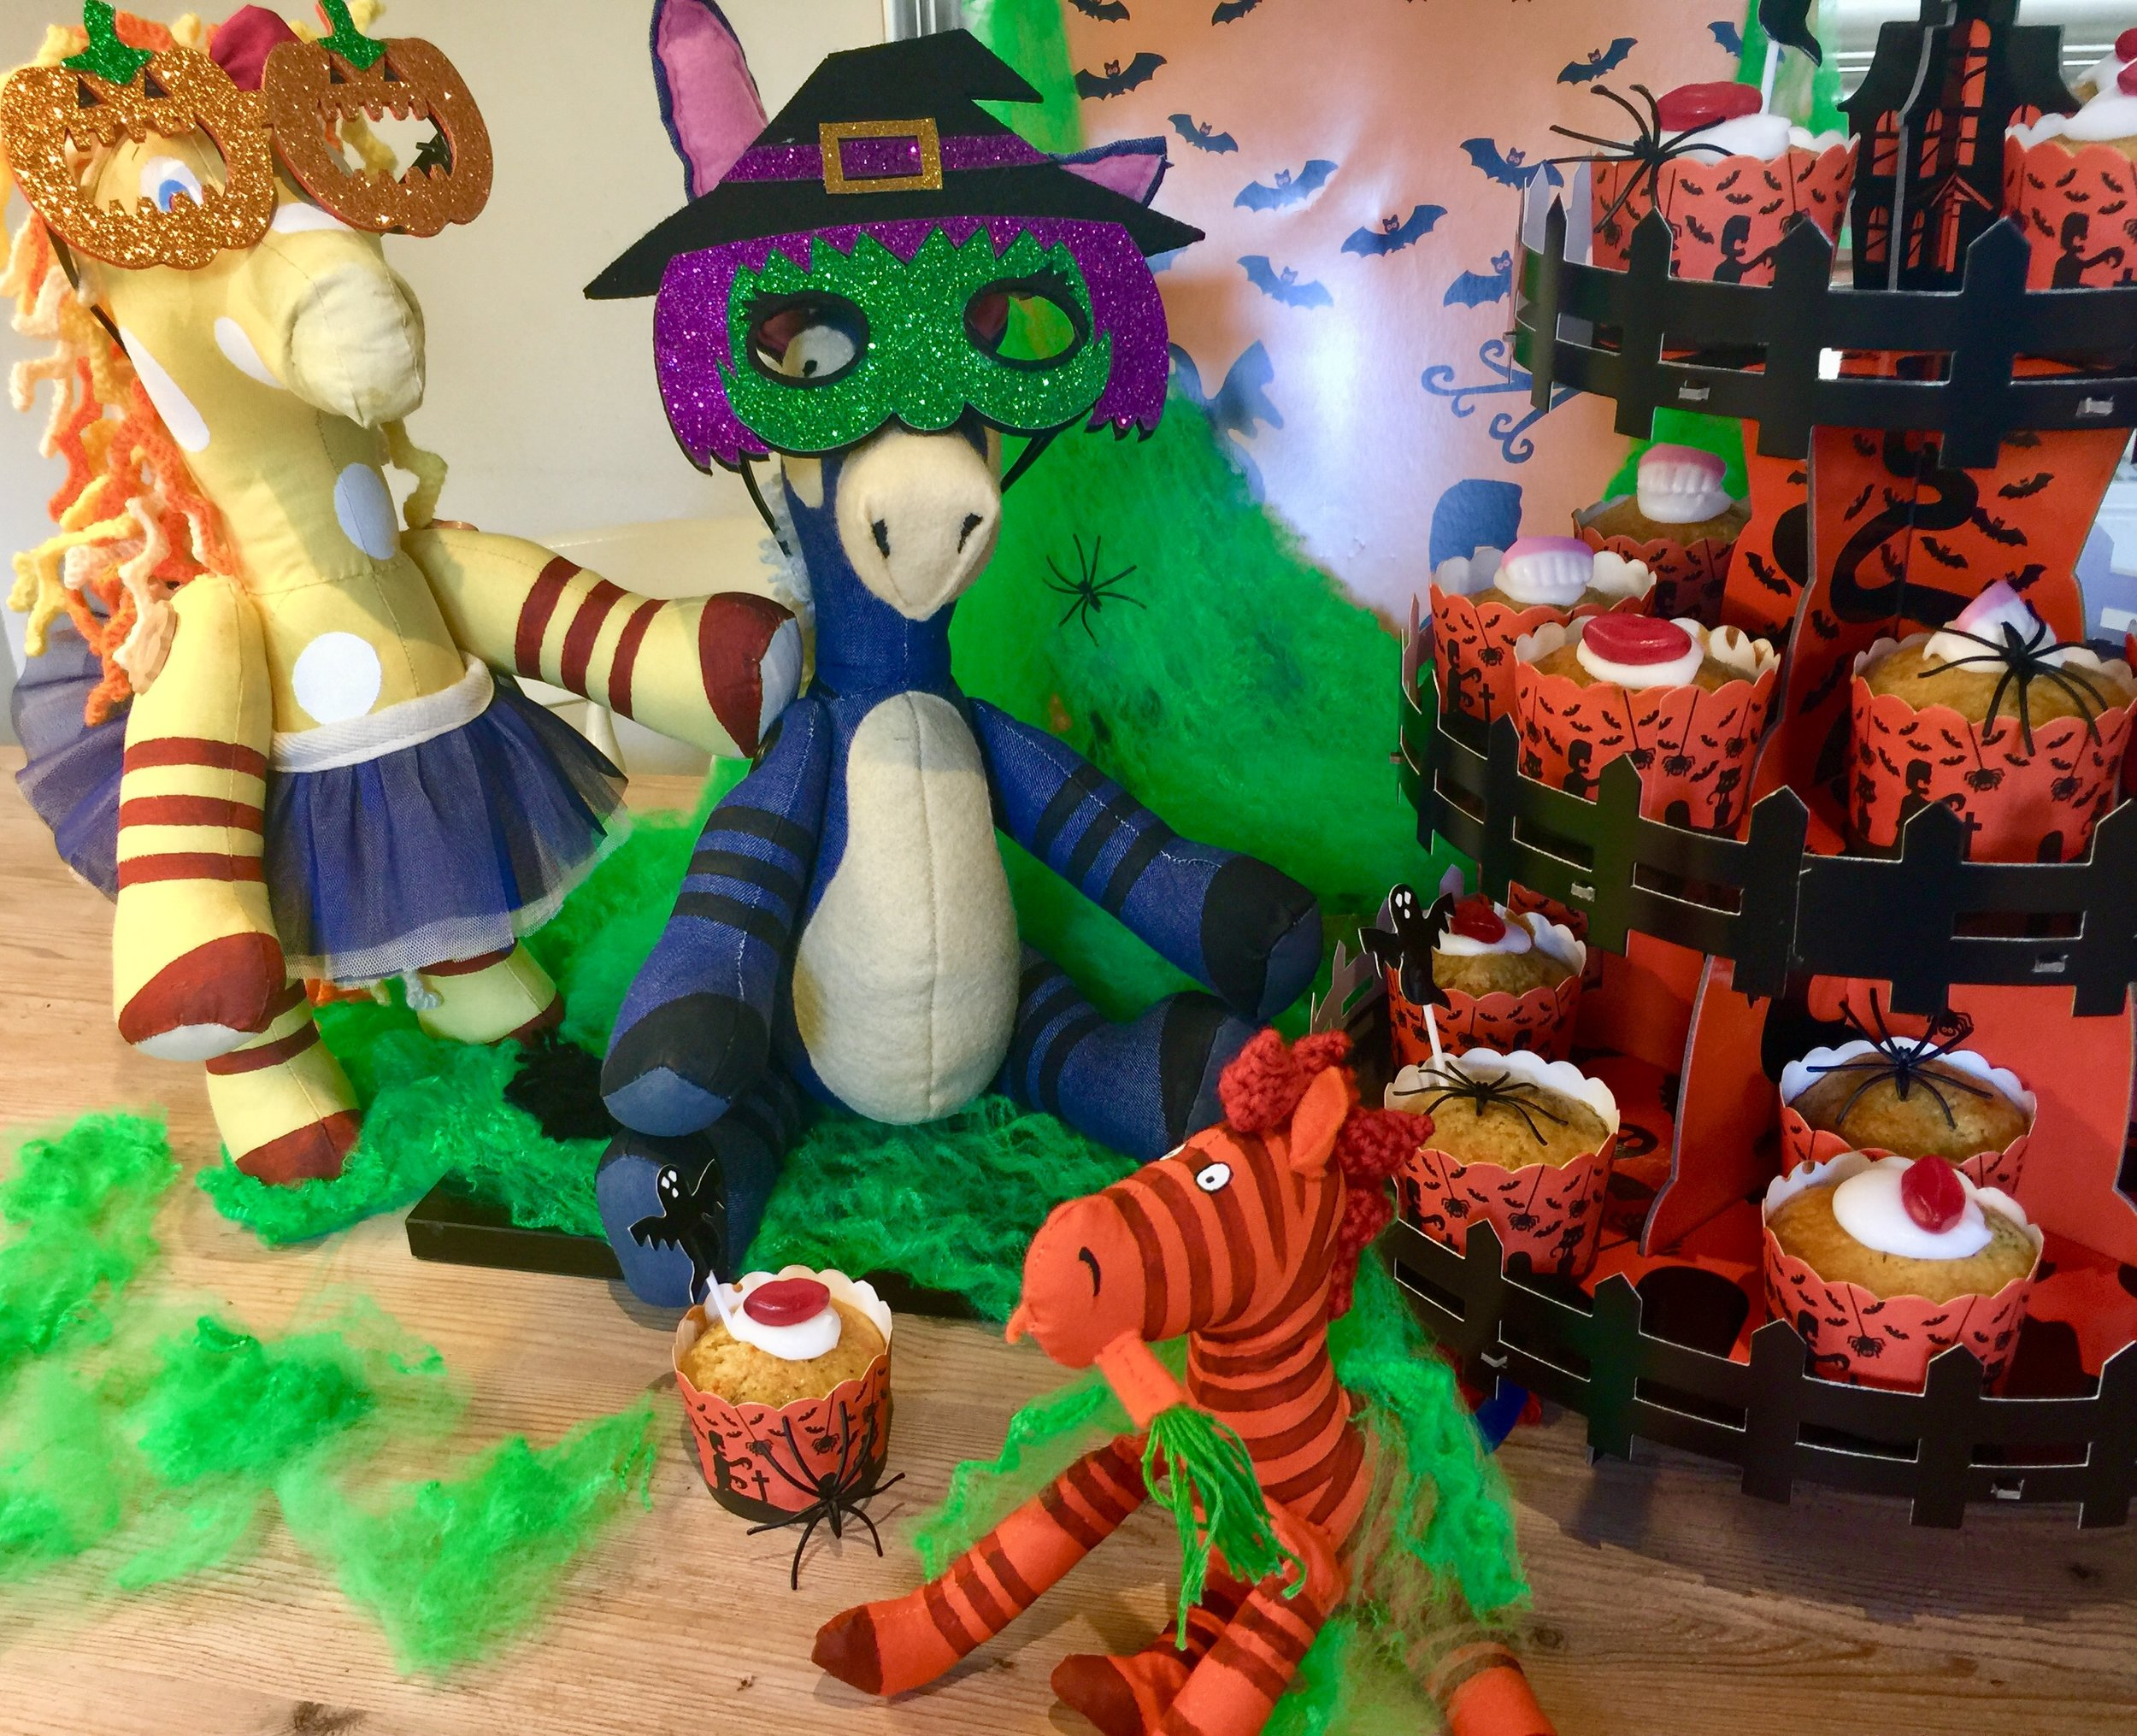 Happy Halloween! - For a fun Halloween treat, why not try making Henry's cupcakes with grated pumpkin instead of carrot?